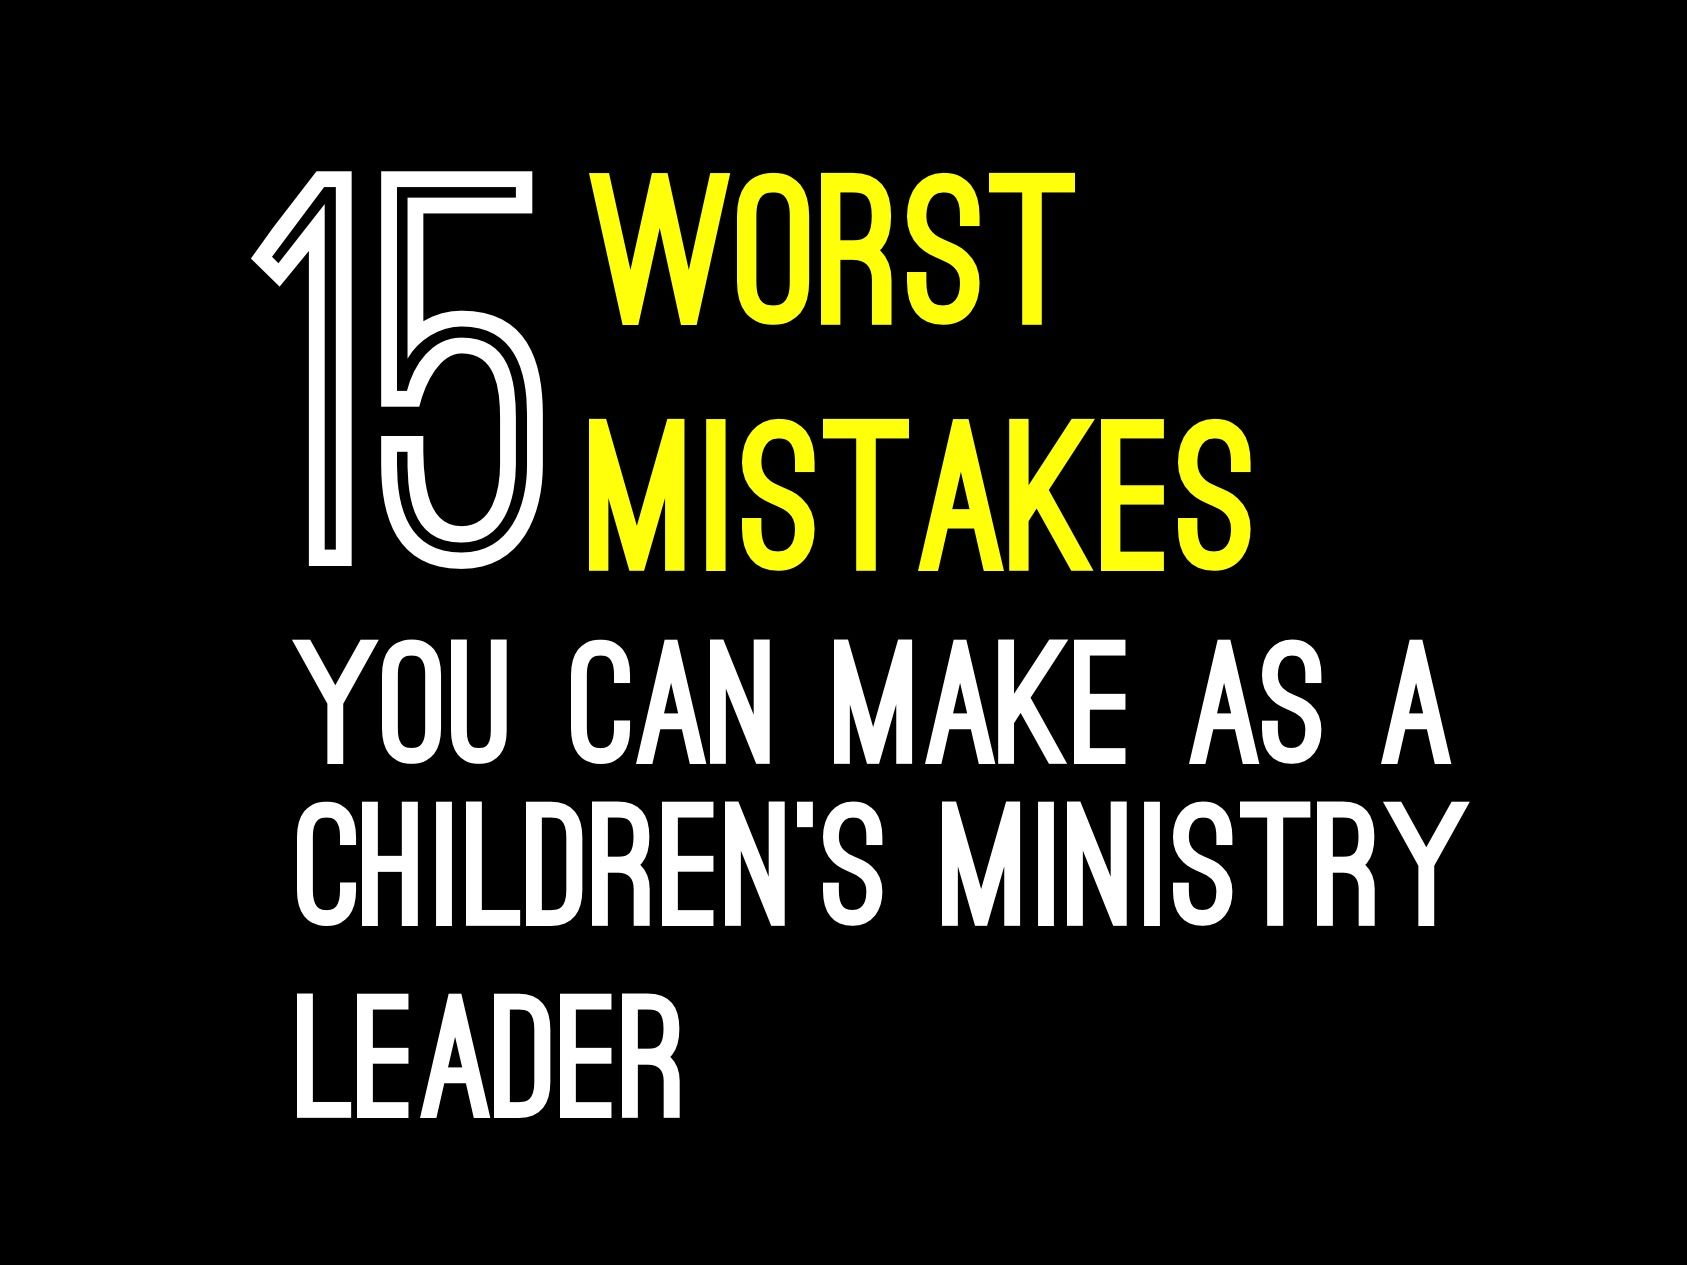 15 Worst Mistakes You Can Make As A Children S Ministry Leader Relevant Children S Ministry